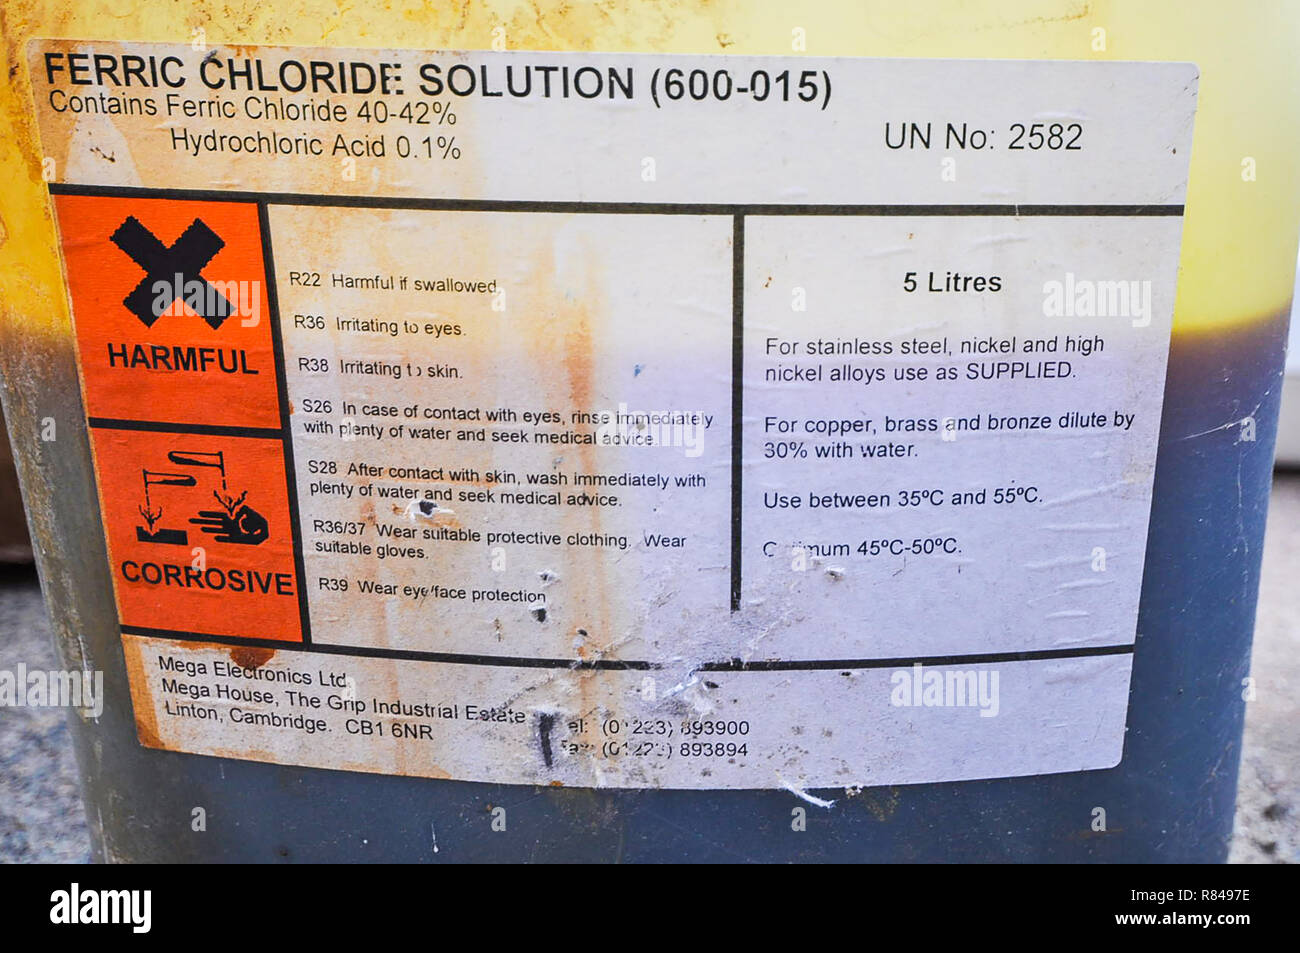 Ferric Chloride Solution container, looking rough. Chemicals. Iron(III) chloride harmful corrosive chemical. FeCI3. Etchant etching chemical for pcb - Stock Image